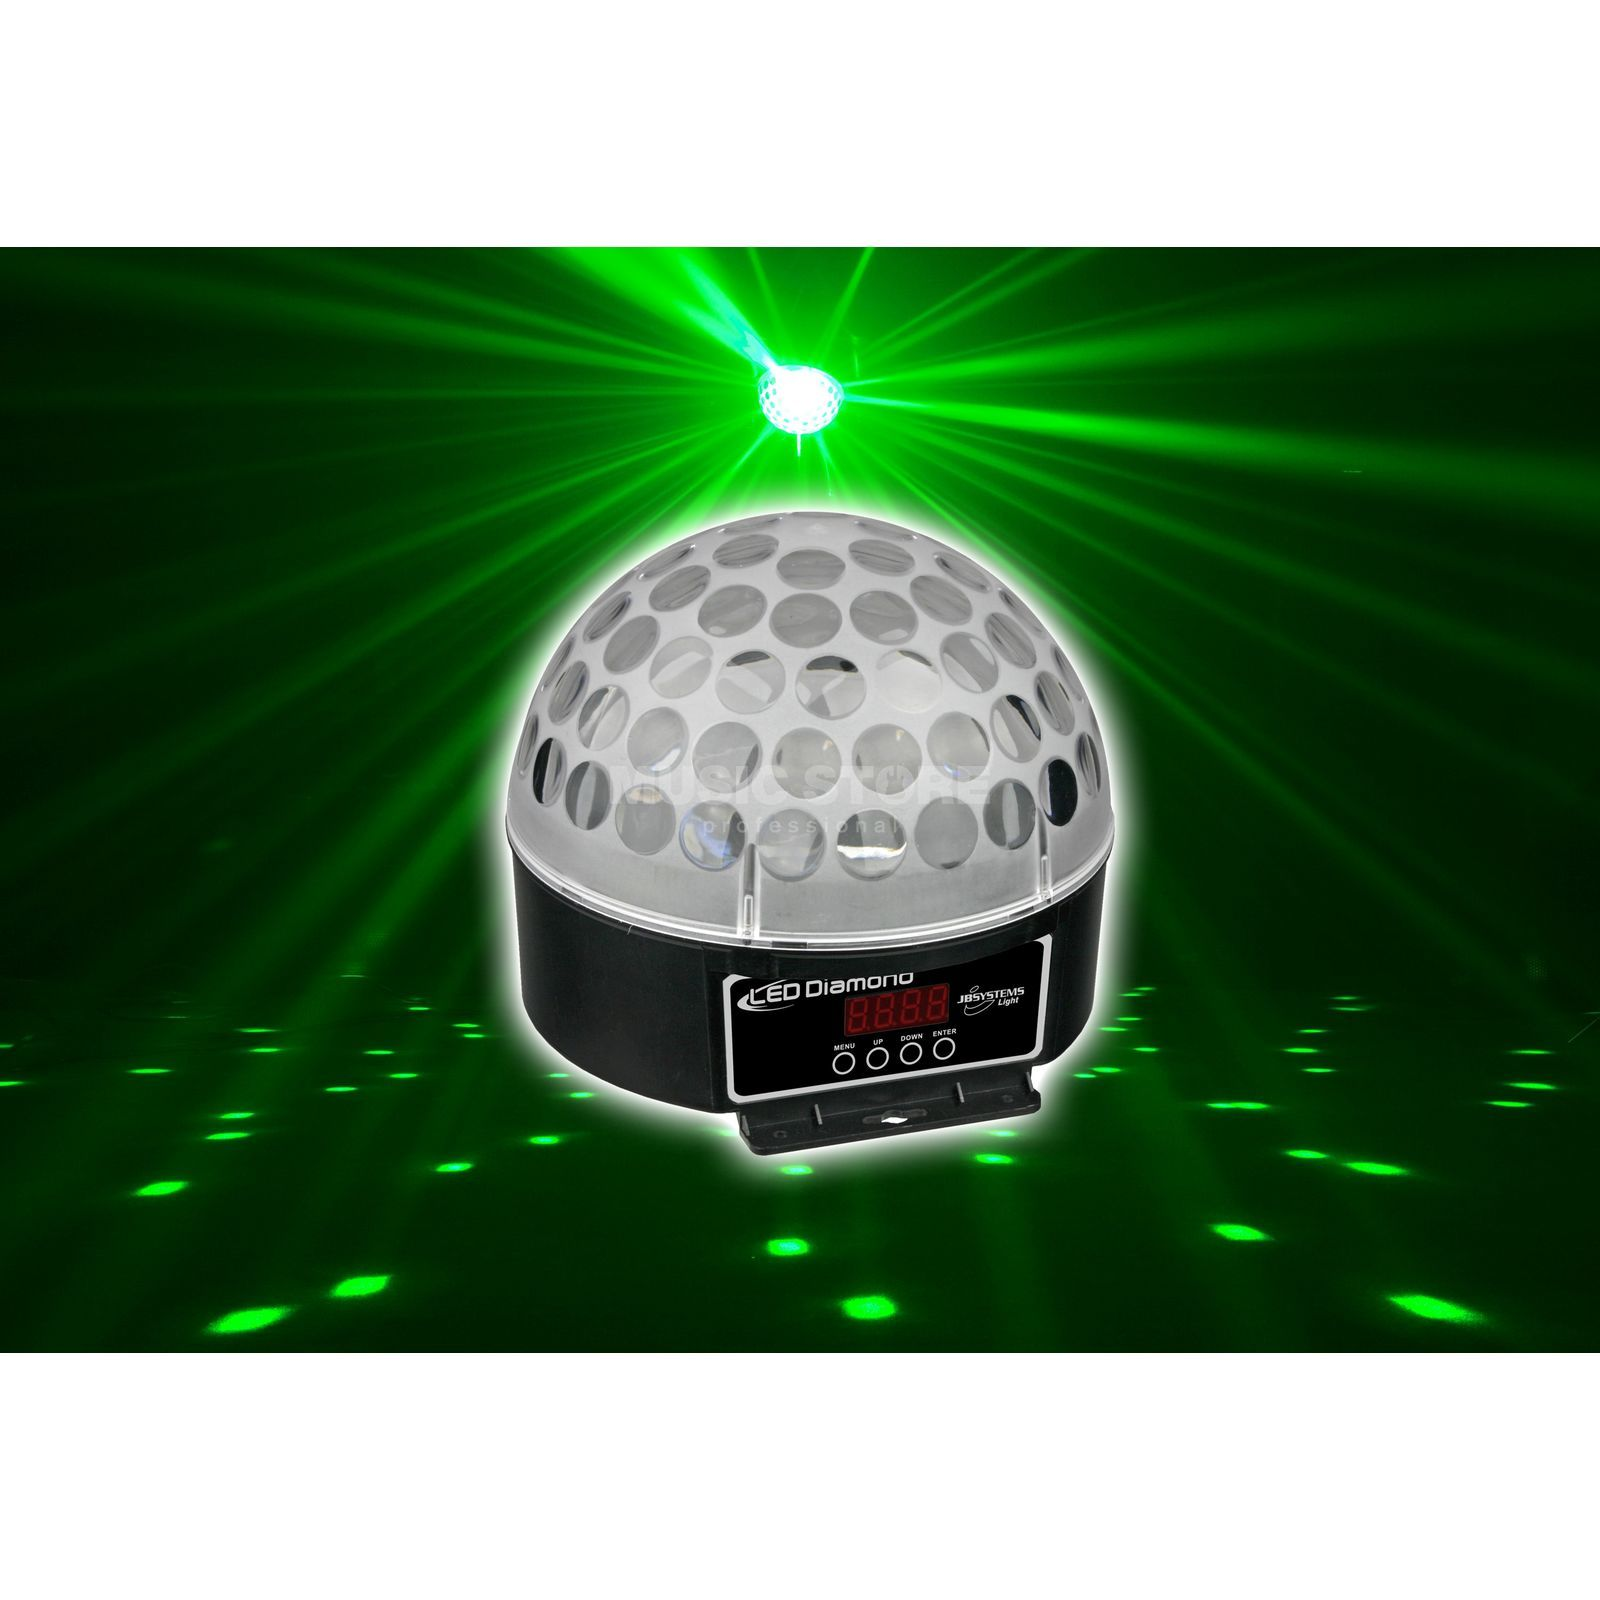 JB Systems LED Diamond LED Effekt with 6x3W RGB-LEDs Produktbillede